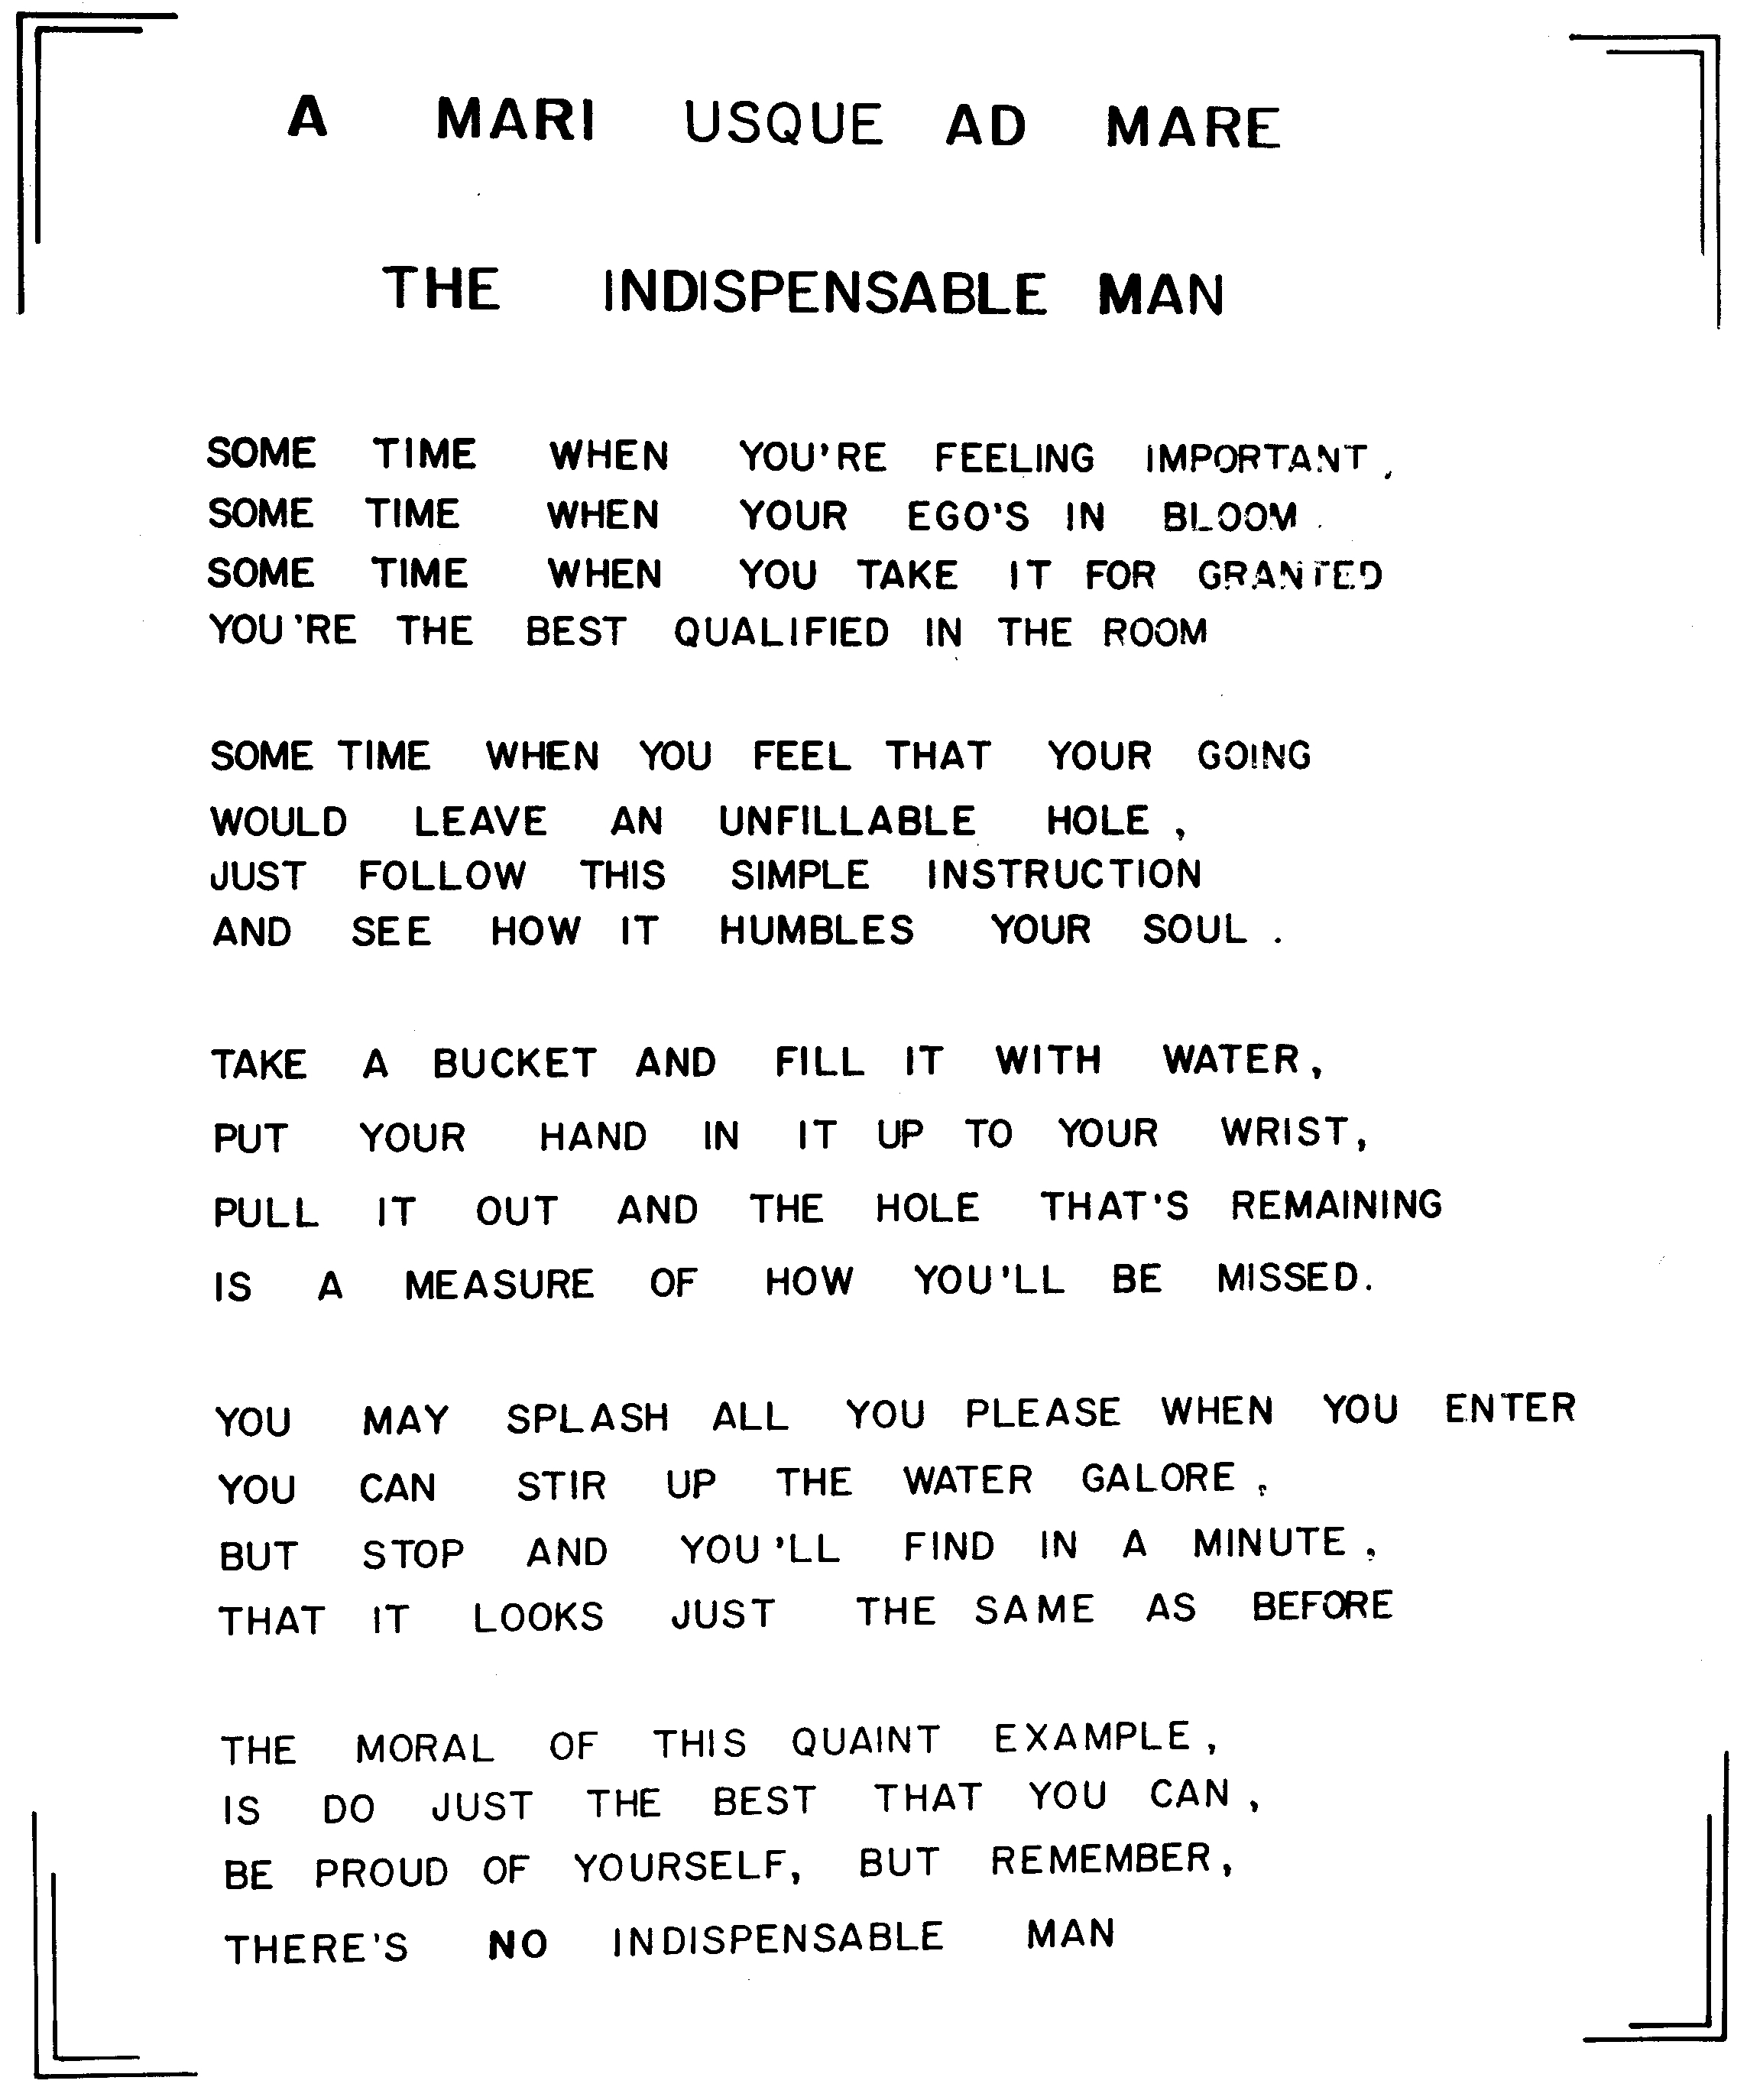 0_The Indispensible Man